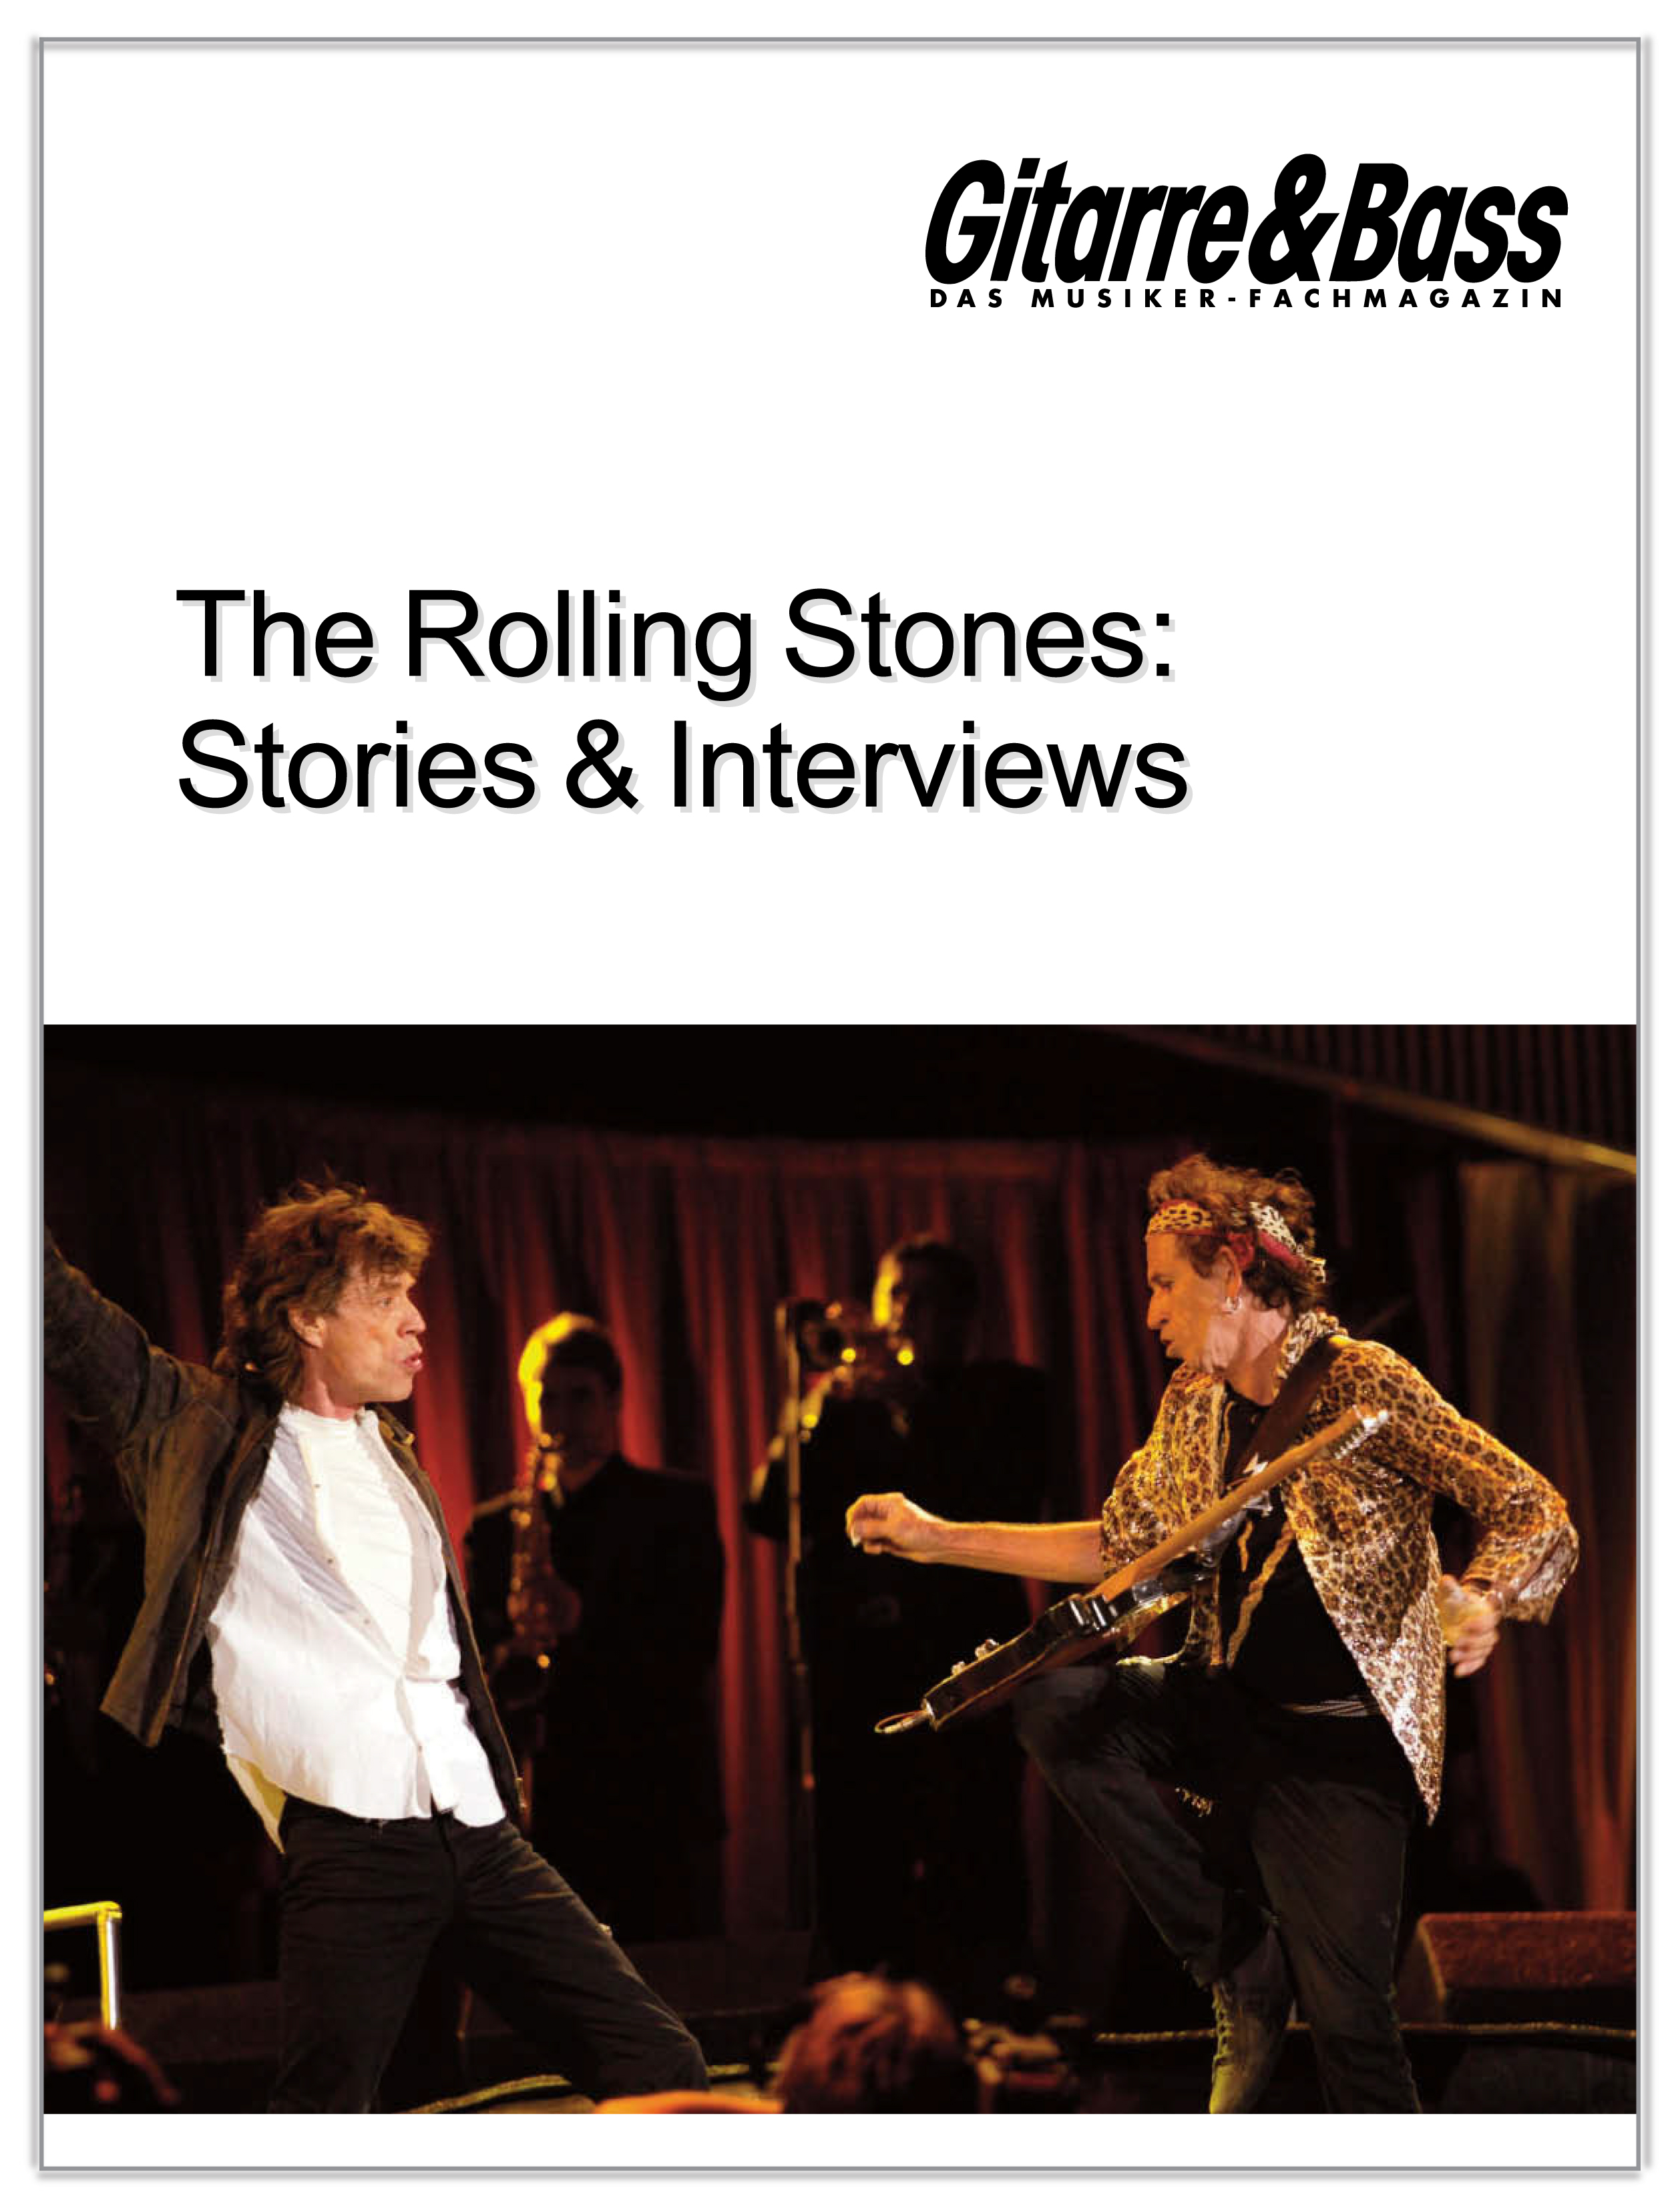 Produkt: The Rolling Stones: Stories & Interviews